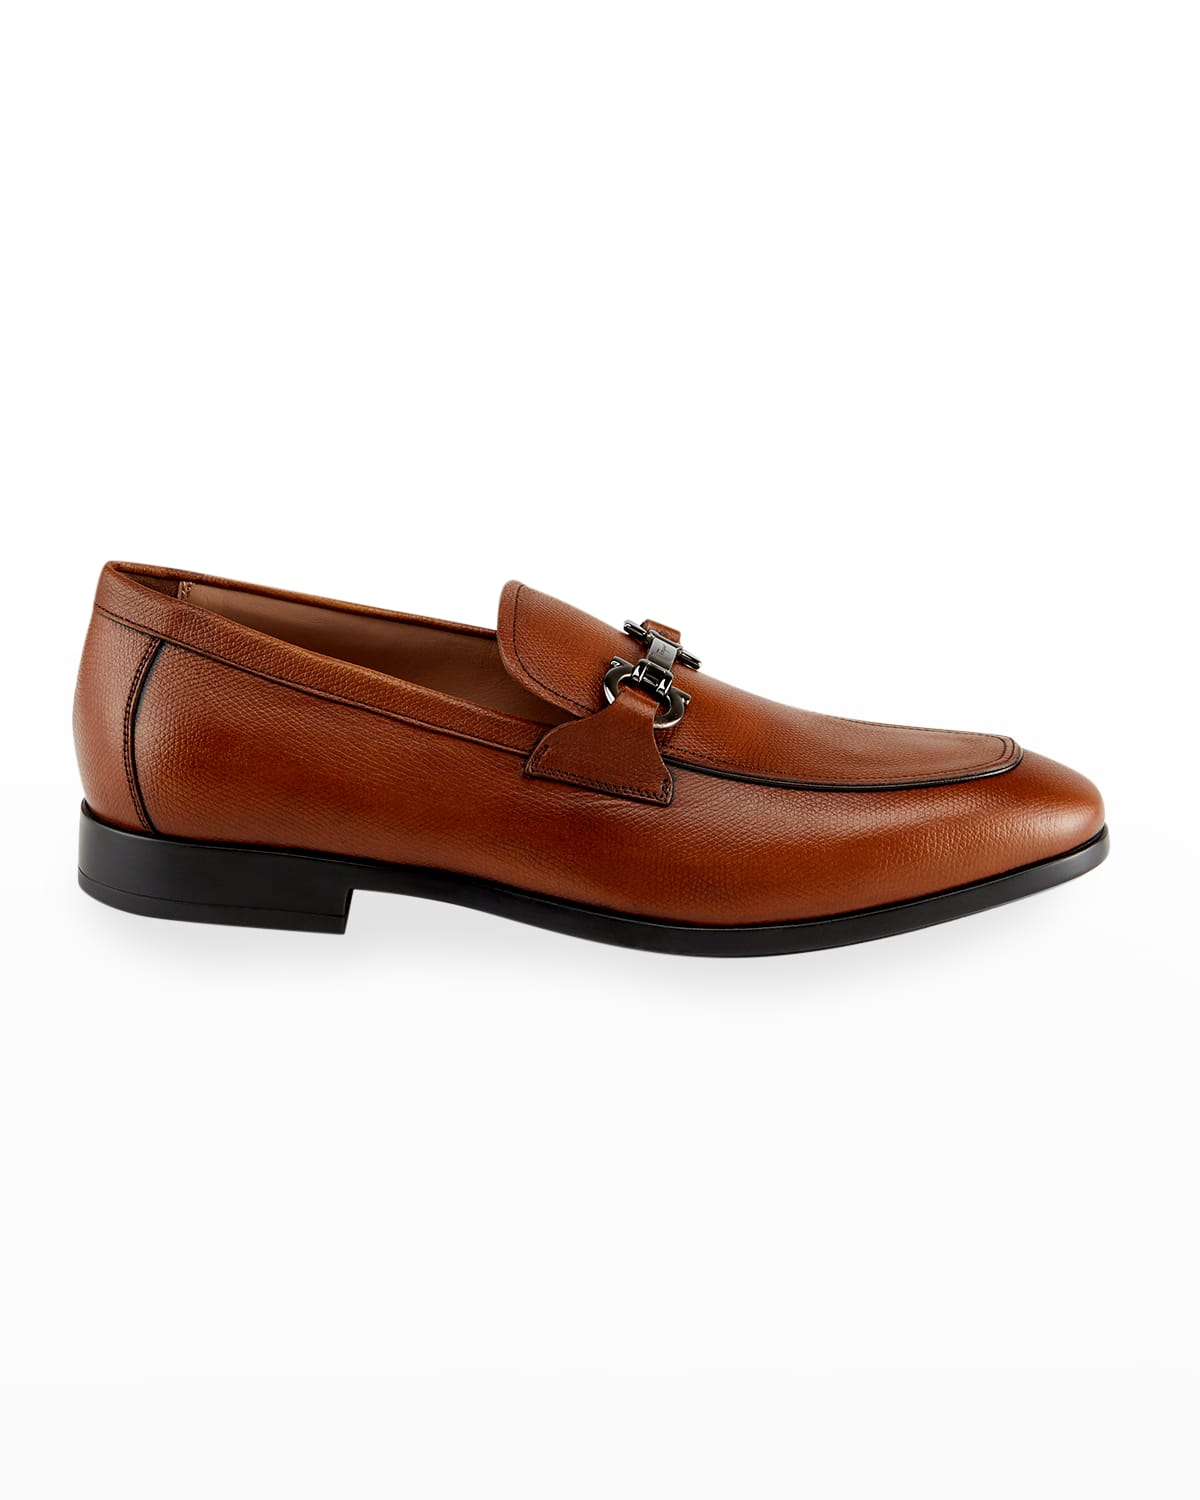 Men's Pebbled Leather Gancini Loafers